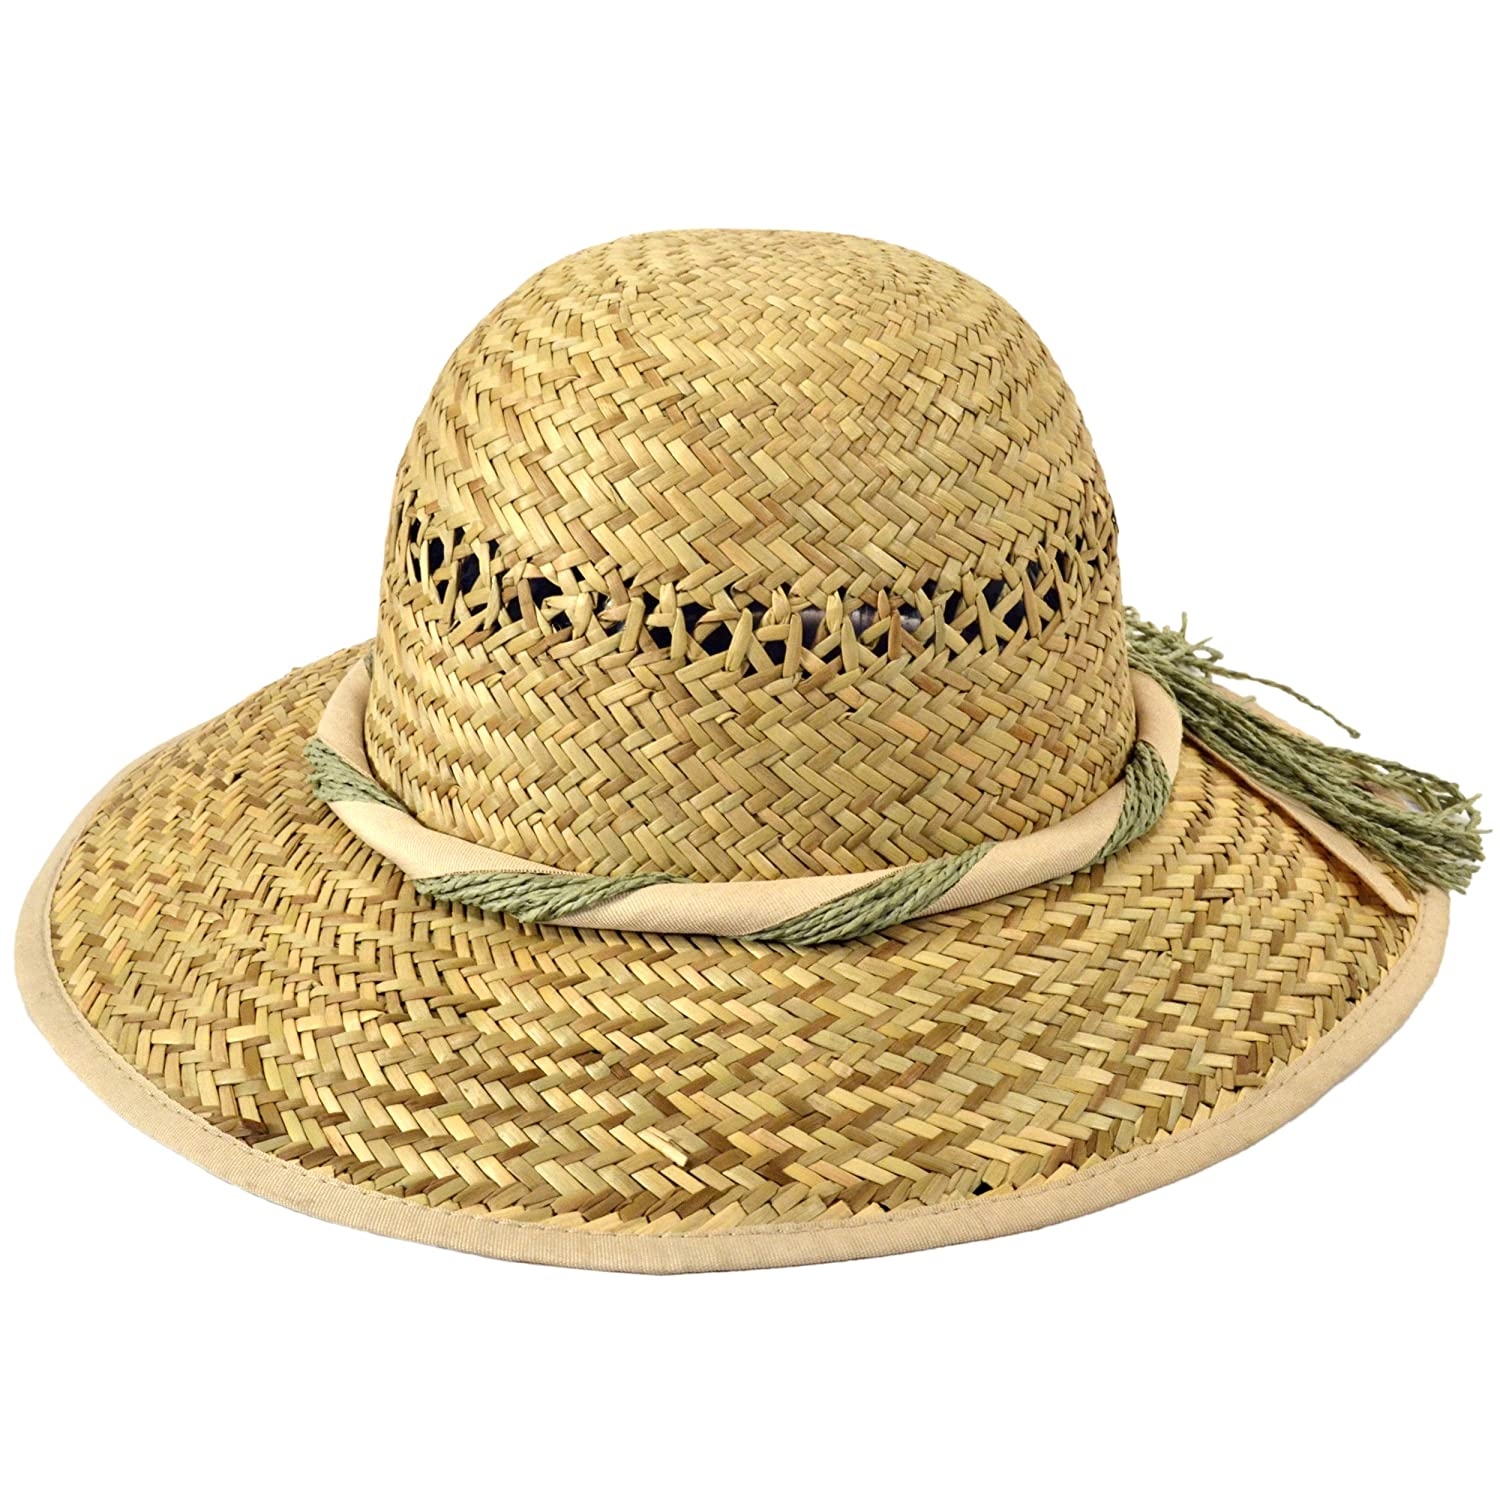 54a5edf5e66 Women s straw hat with cream ribbon and twine band and cream rim (57cm)   Amazon.co.uk  Clothing